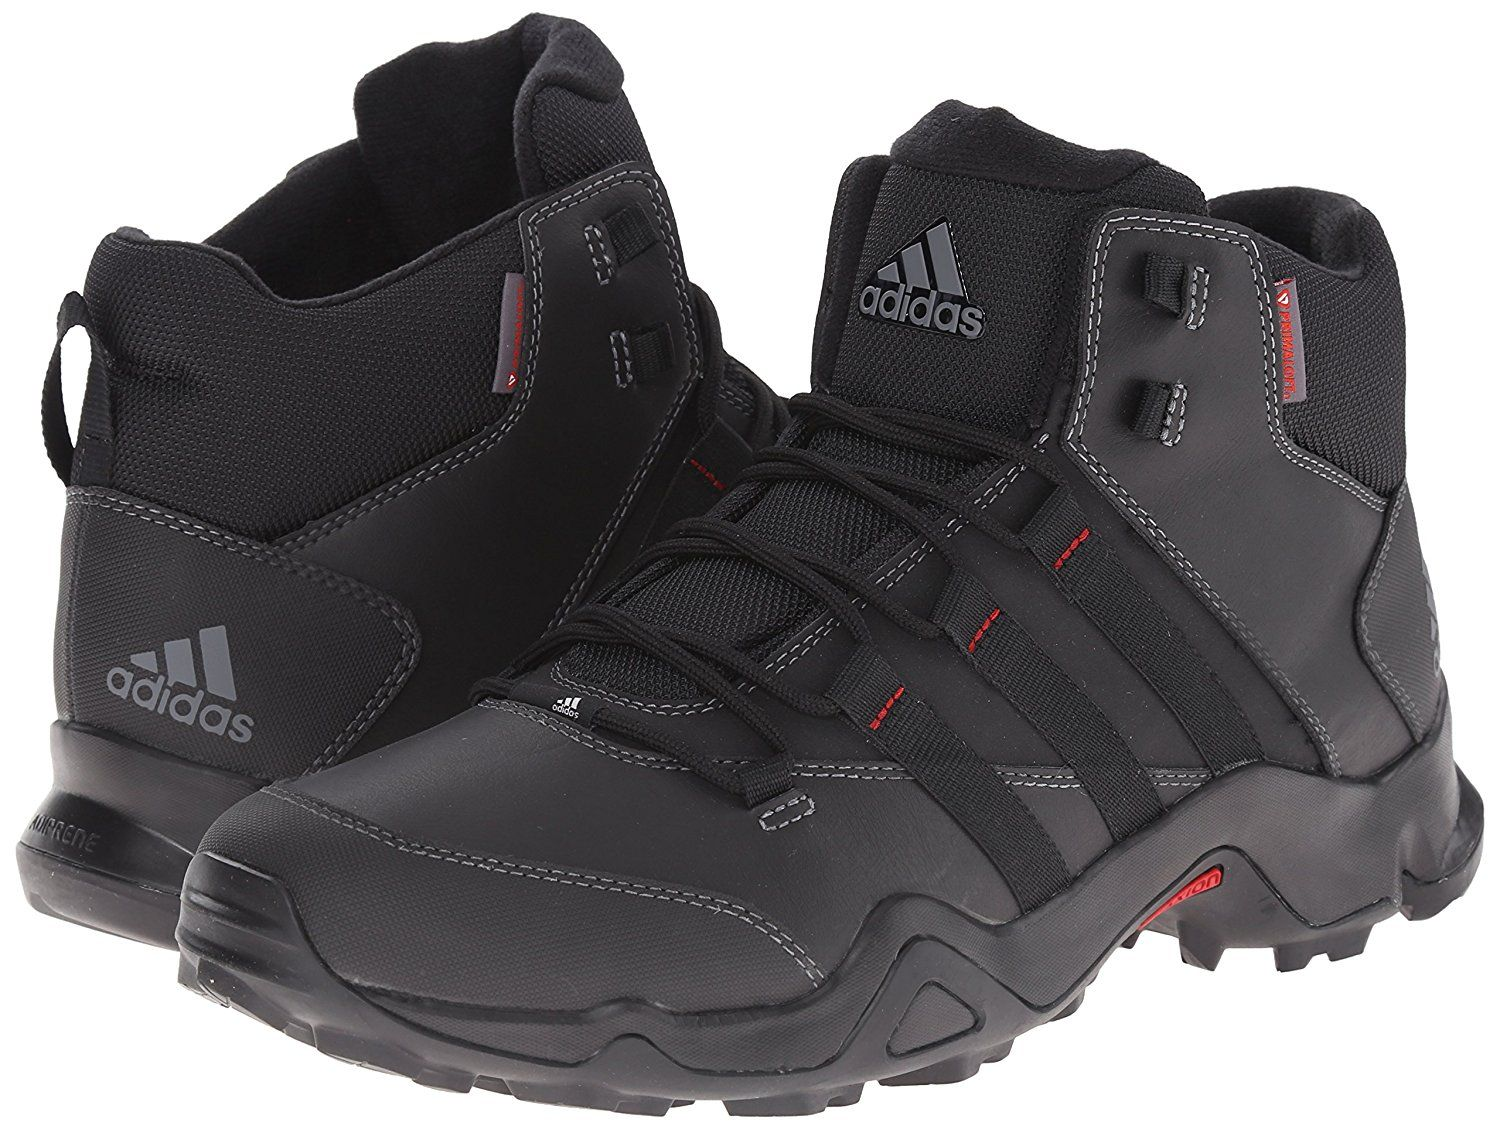 adidas Outdoor Men's Cw Ax2 Beta Mid Hiking Boot To view